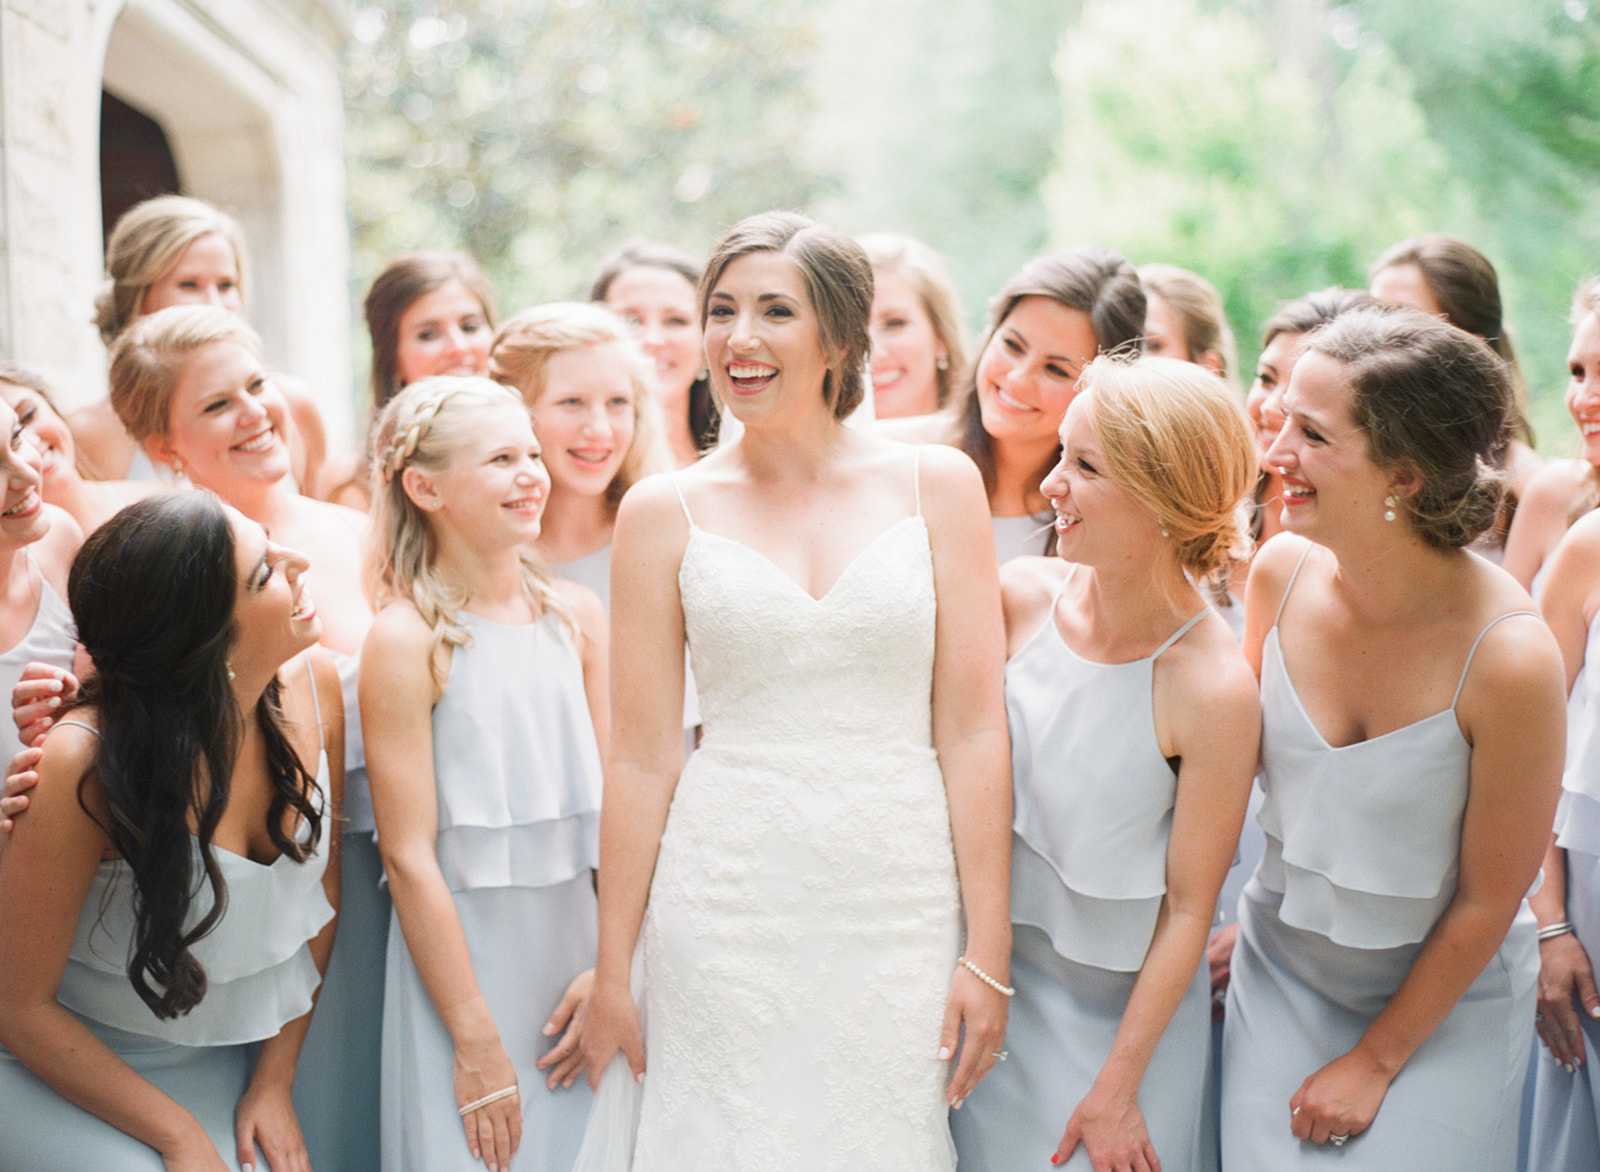 Handley Breaux Designs | Alisha Crossley Photography